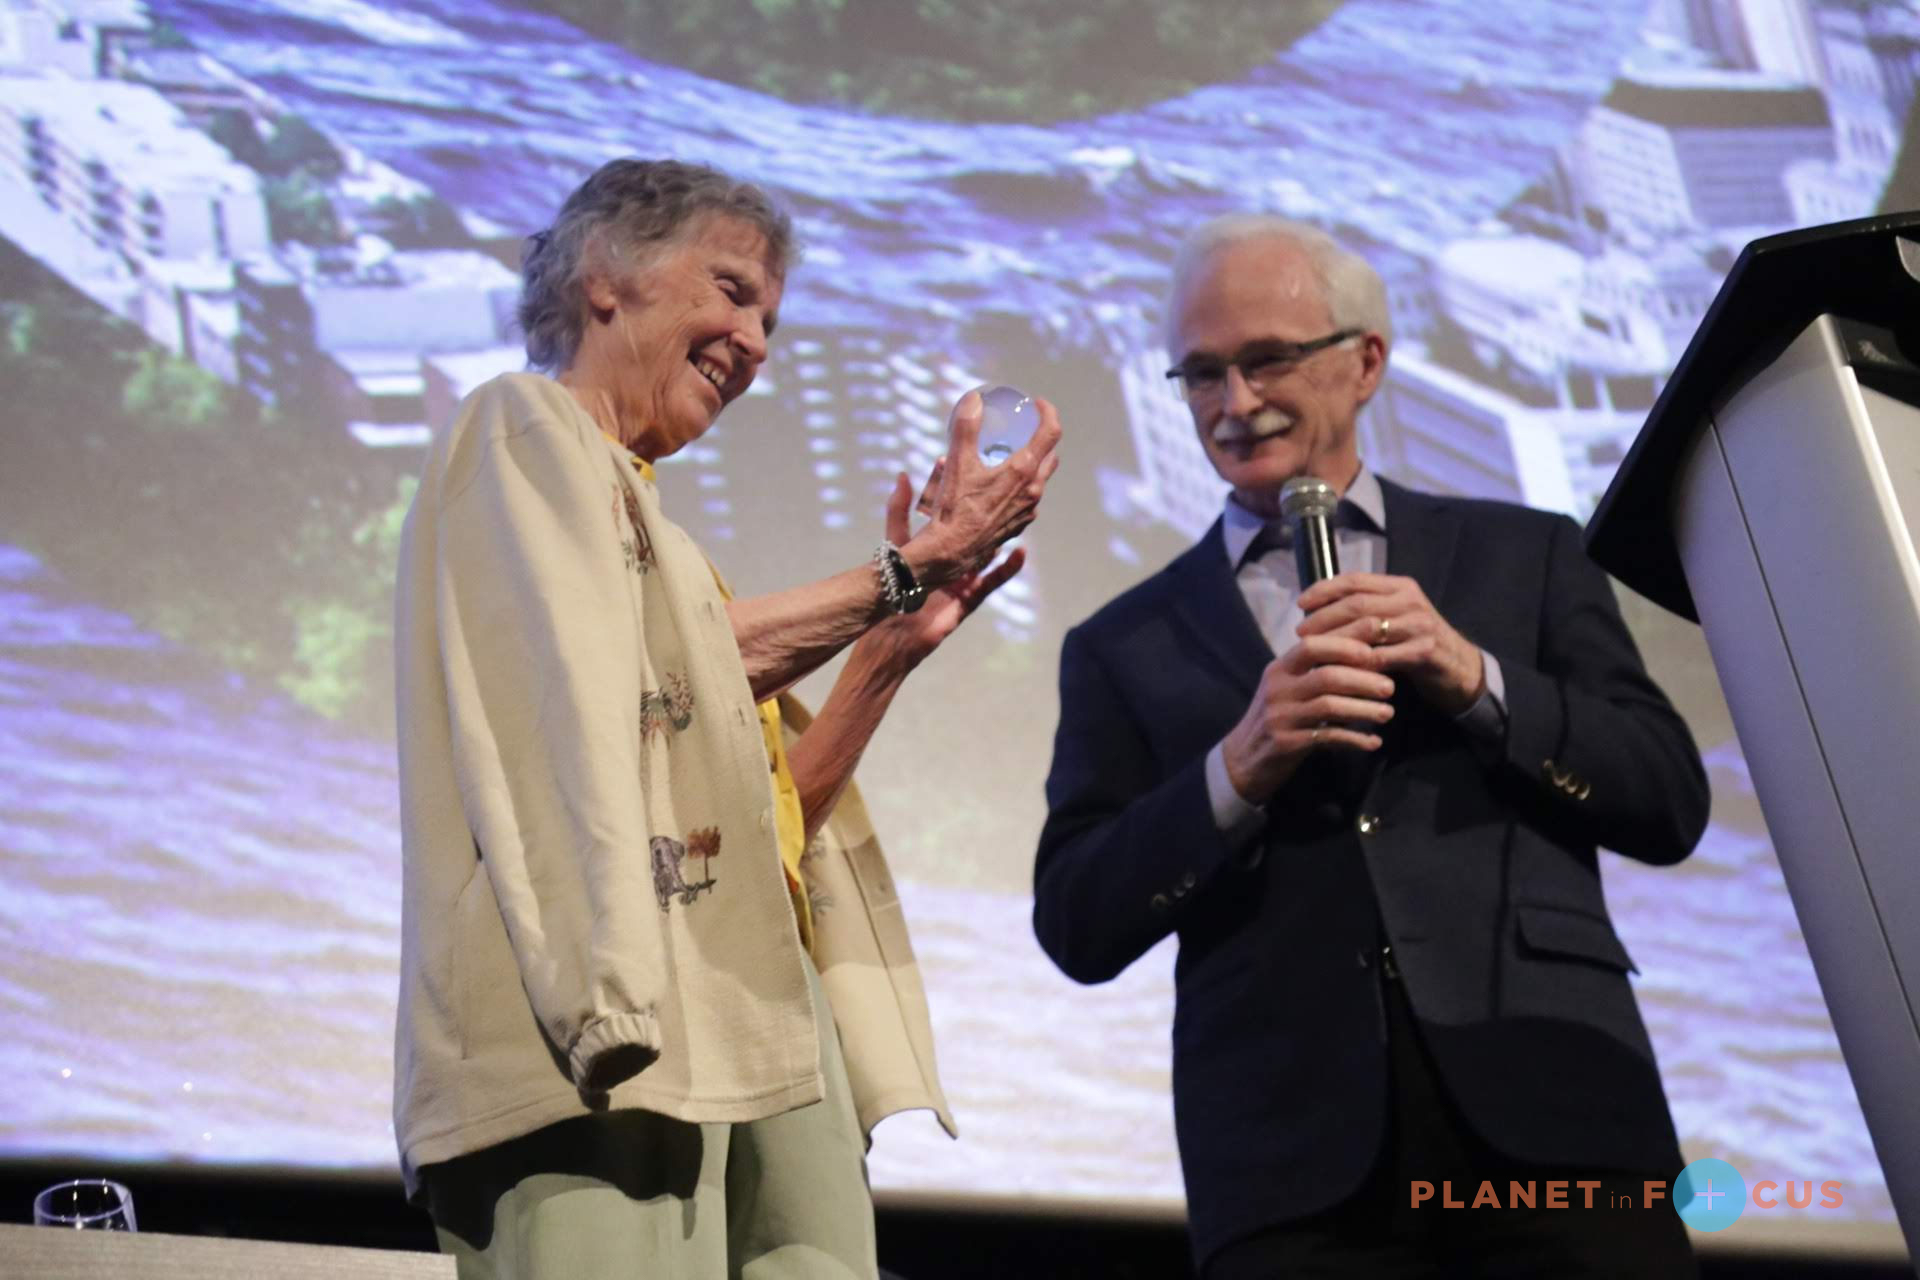 Planet in Focus kicked off with a special launch event honouring our 2018 Canadian Eco-Hero, Dr. Anne Innis Dagg, for her extensive research on giraffes and feminist activism. To further honour the world's first 'giraffologist' and the first person to study animal behaviour in the wild, we screened The Woman Who Loves Giraffes, a film about Dagg's life and research.